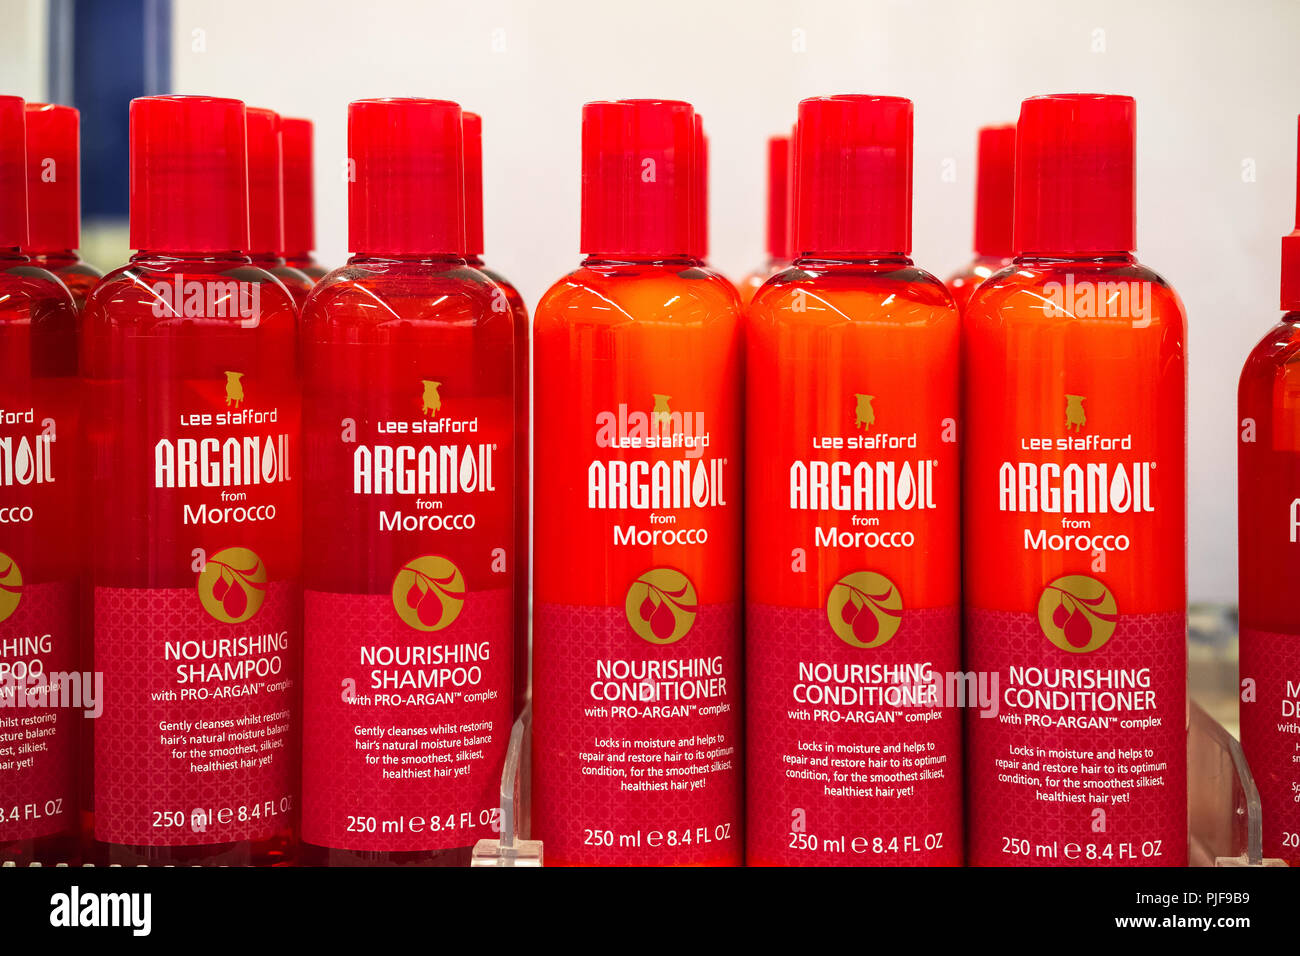 London, UK - August 12, 2018 - Lee Stafford ARGANOIL nourishing shampoo and conditioner on display at Boots duty free shop in London Heathrow Airport - Stock Image